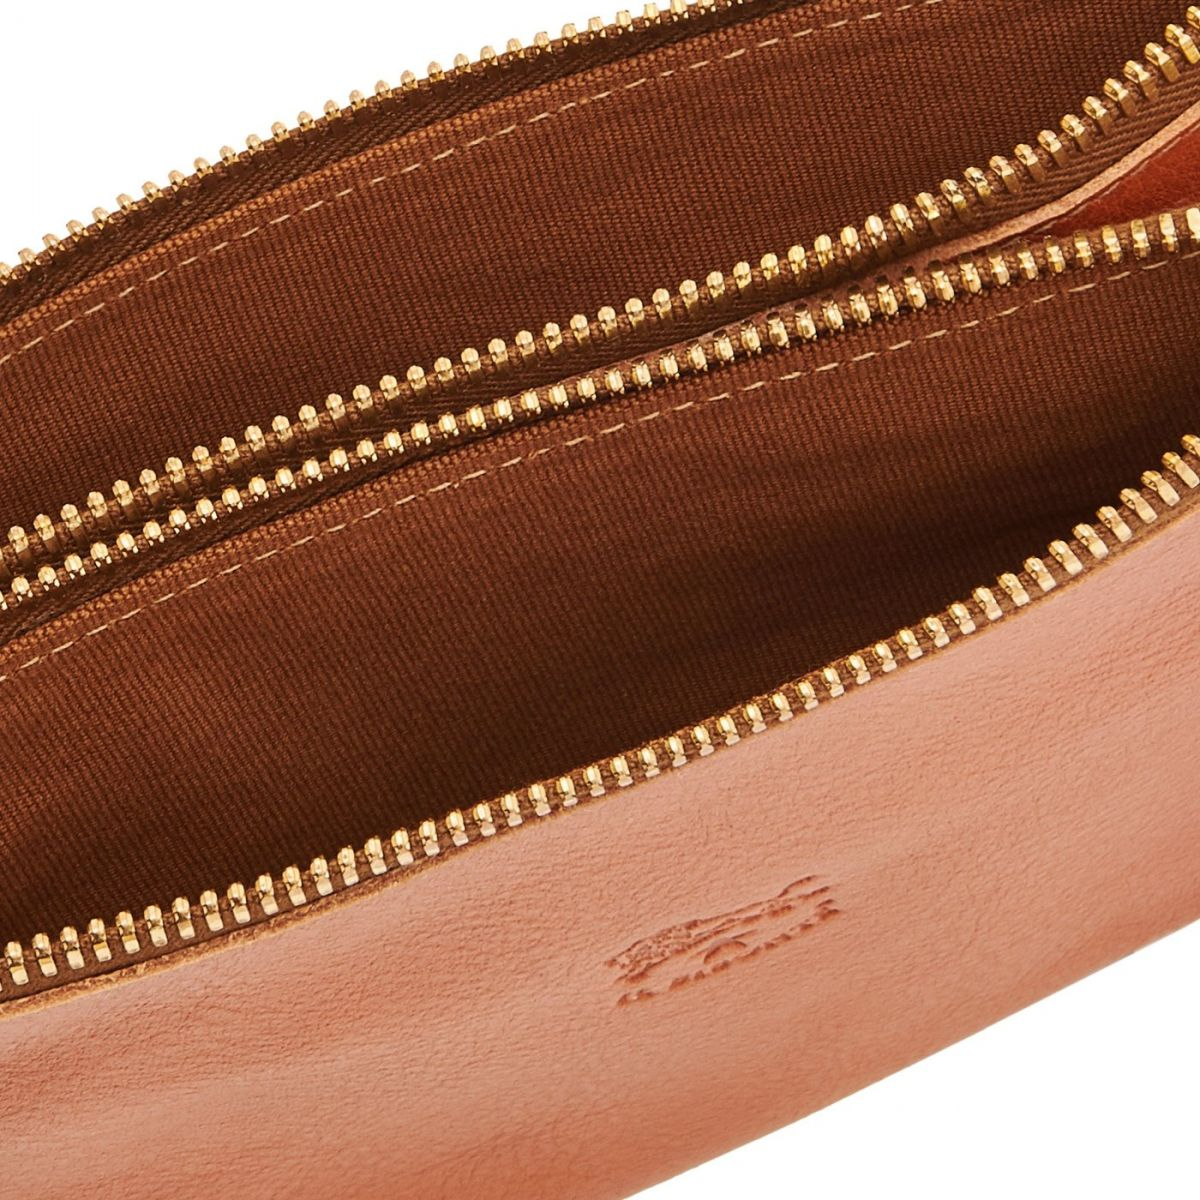 Giulia - Women's Clutch Bag Talamone in Cowhide Double Leather BCL022 color Caramel | Details